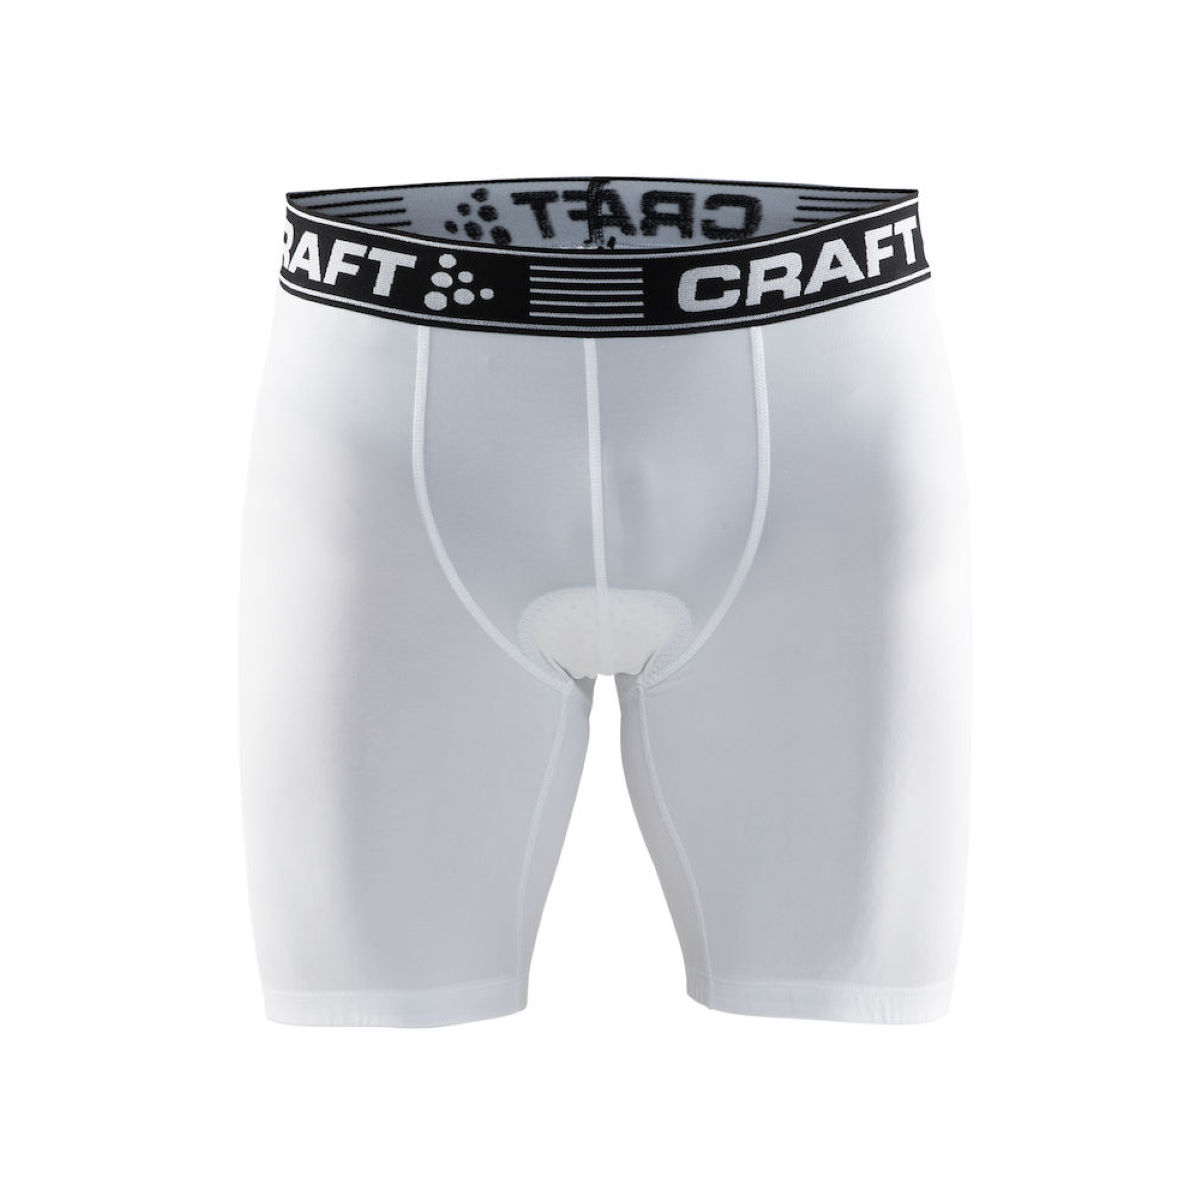 Boxer cycliste Craft Greatness - XS Blanc Vêtements de corps